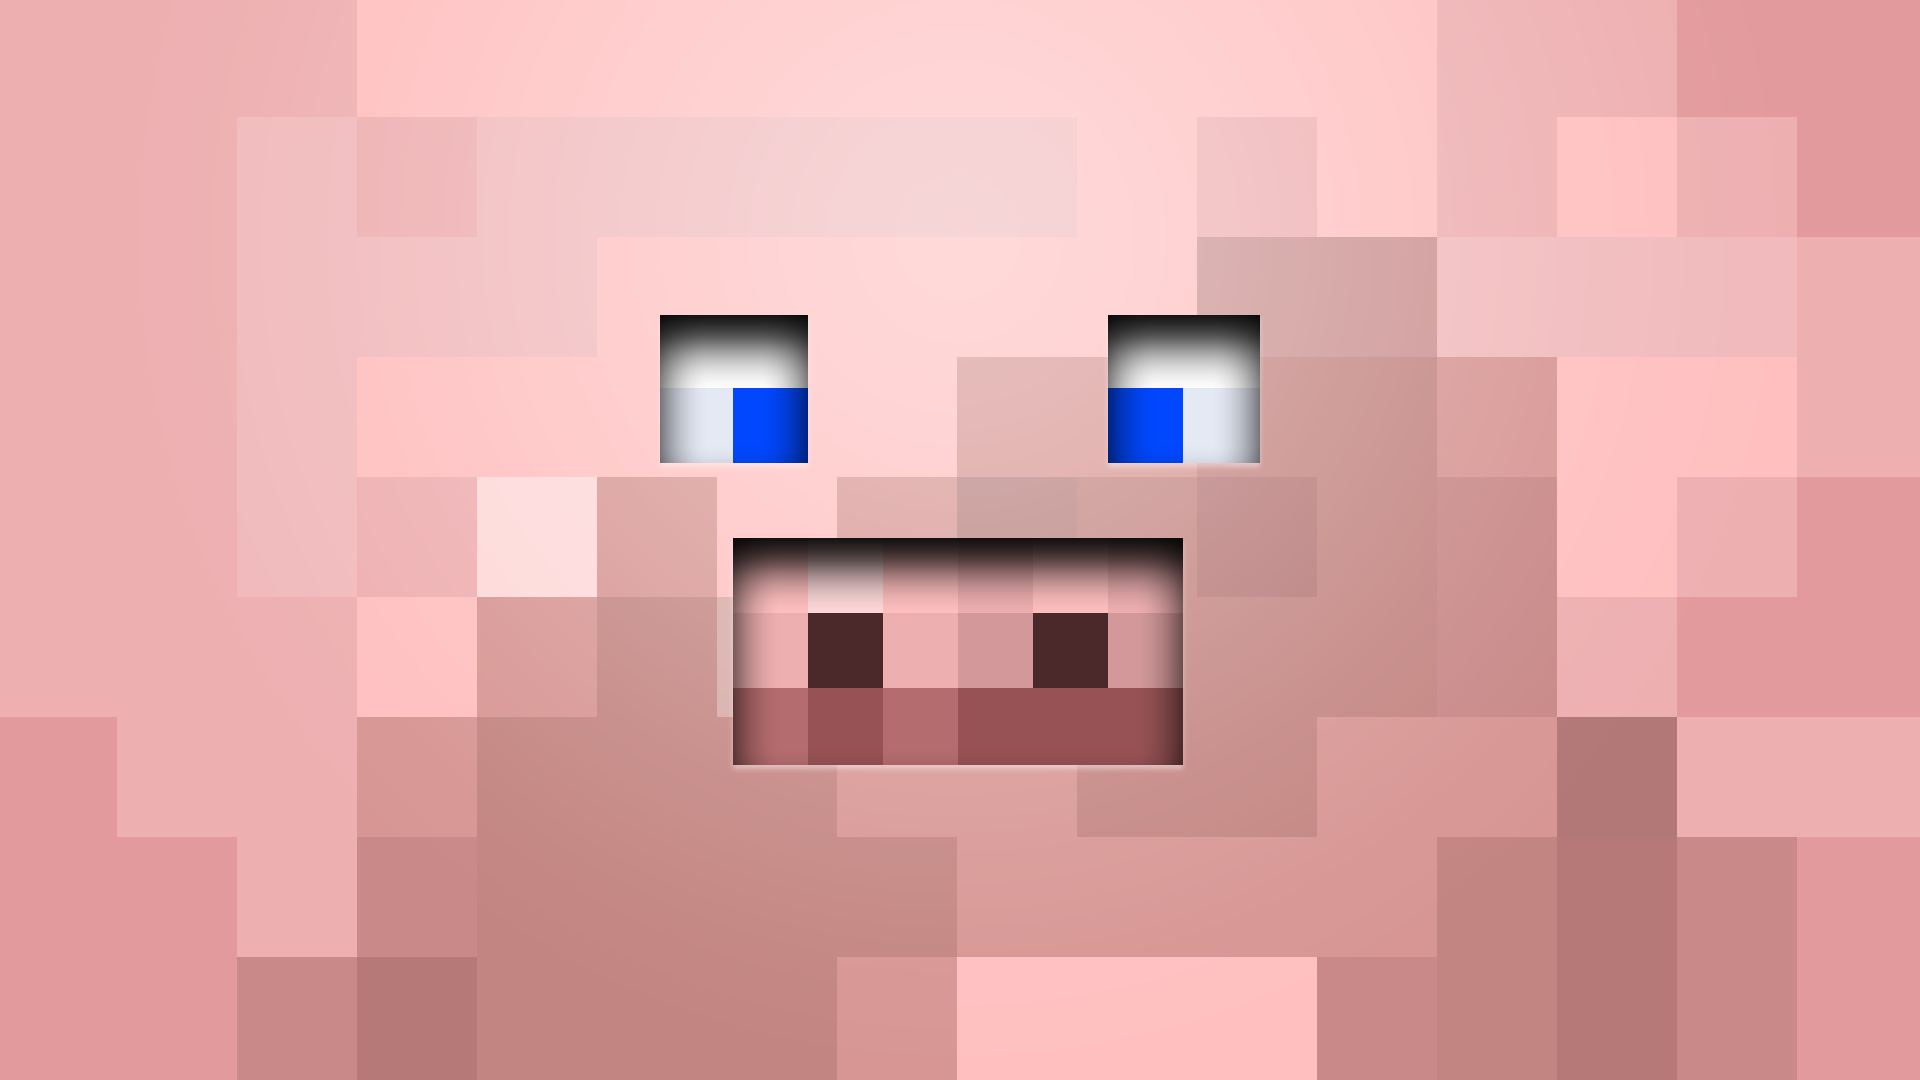 minecraft pigs faces game HD Wallpaper